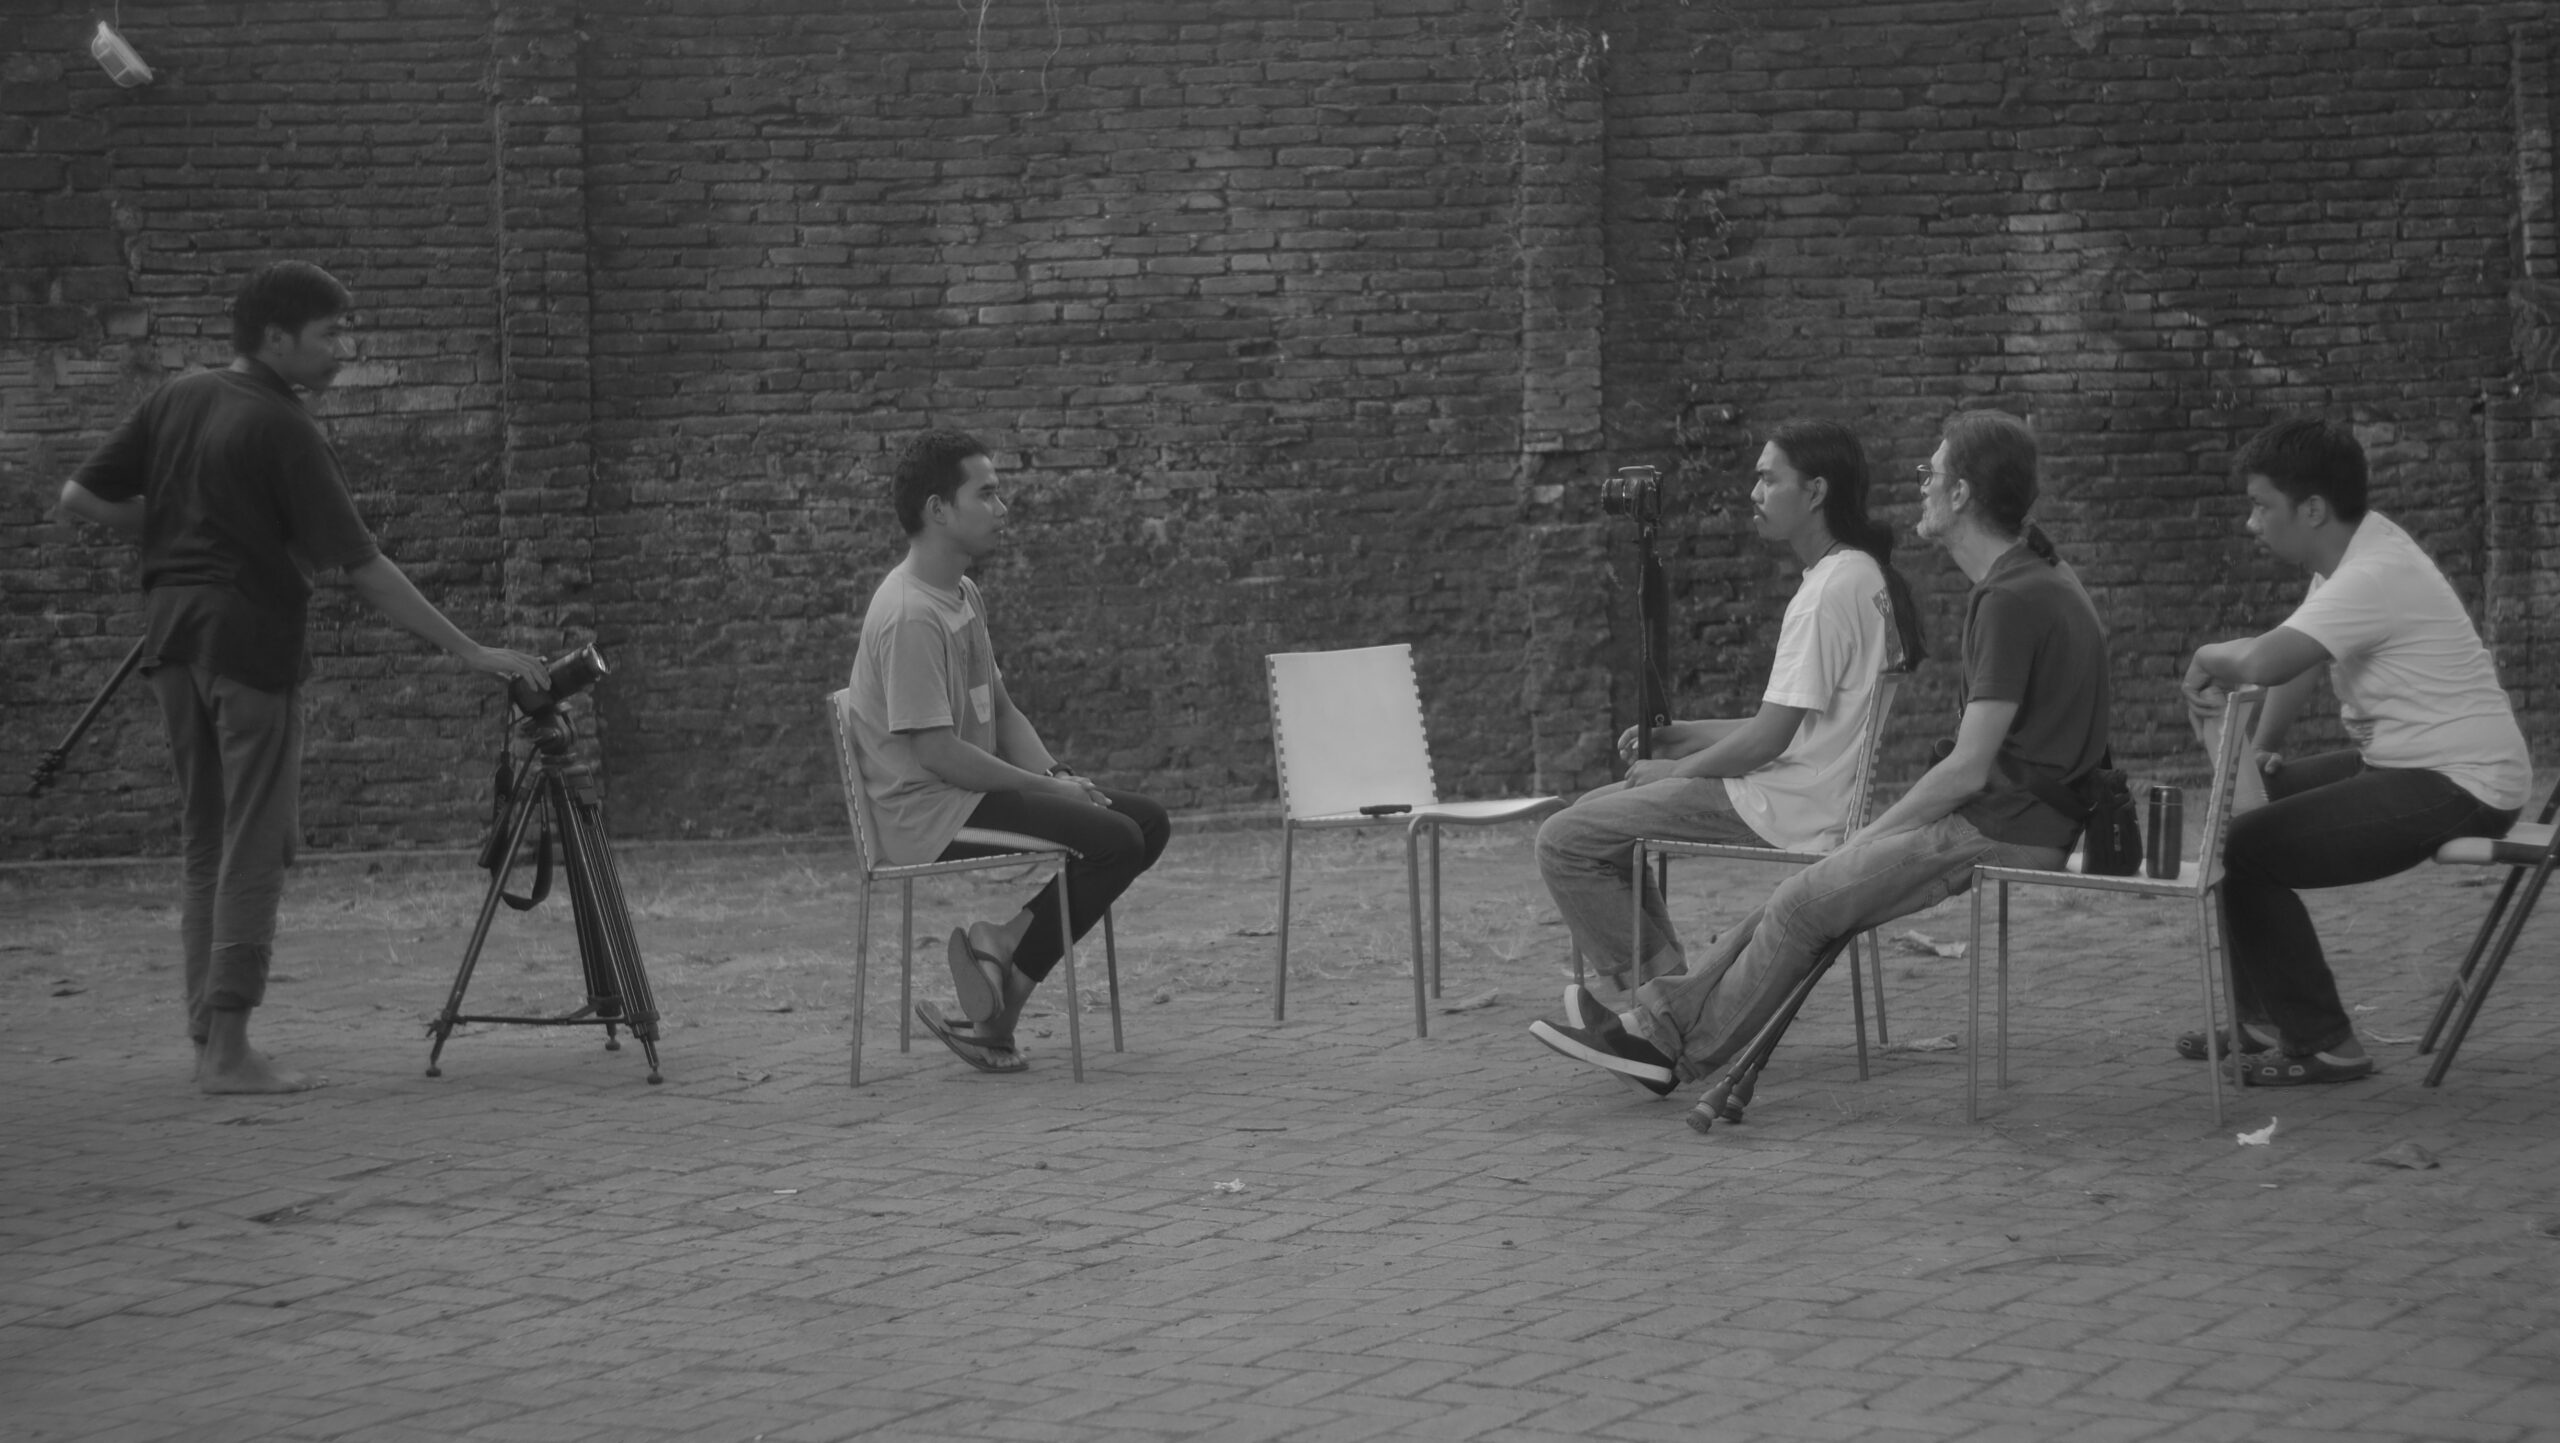 A photographer films a scene of two seated men, while two other people observe.